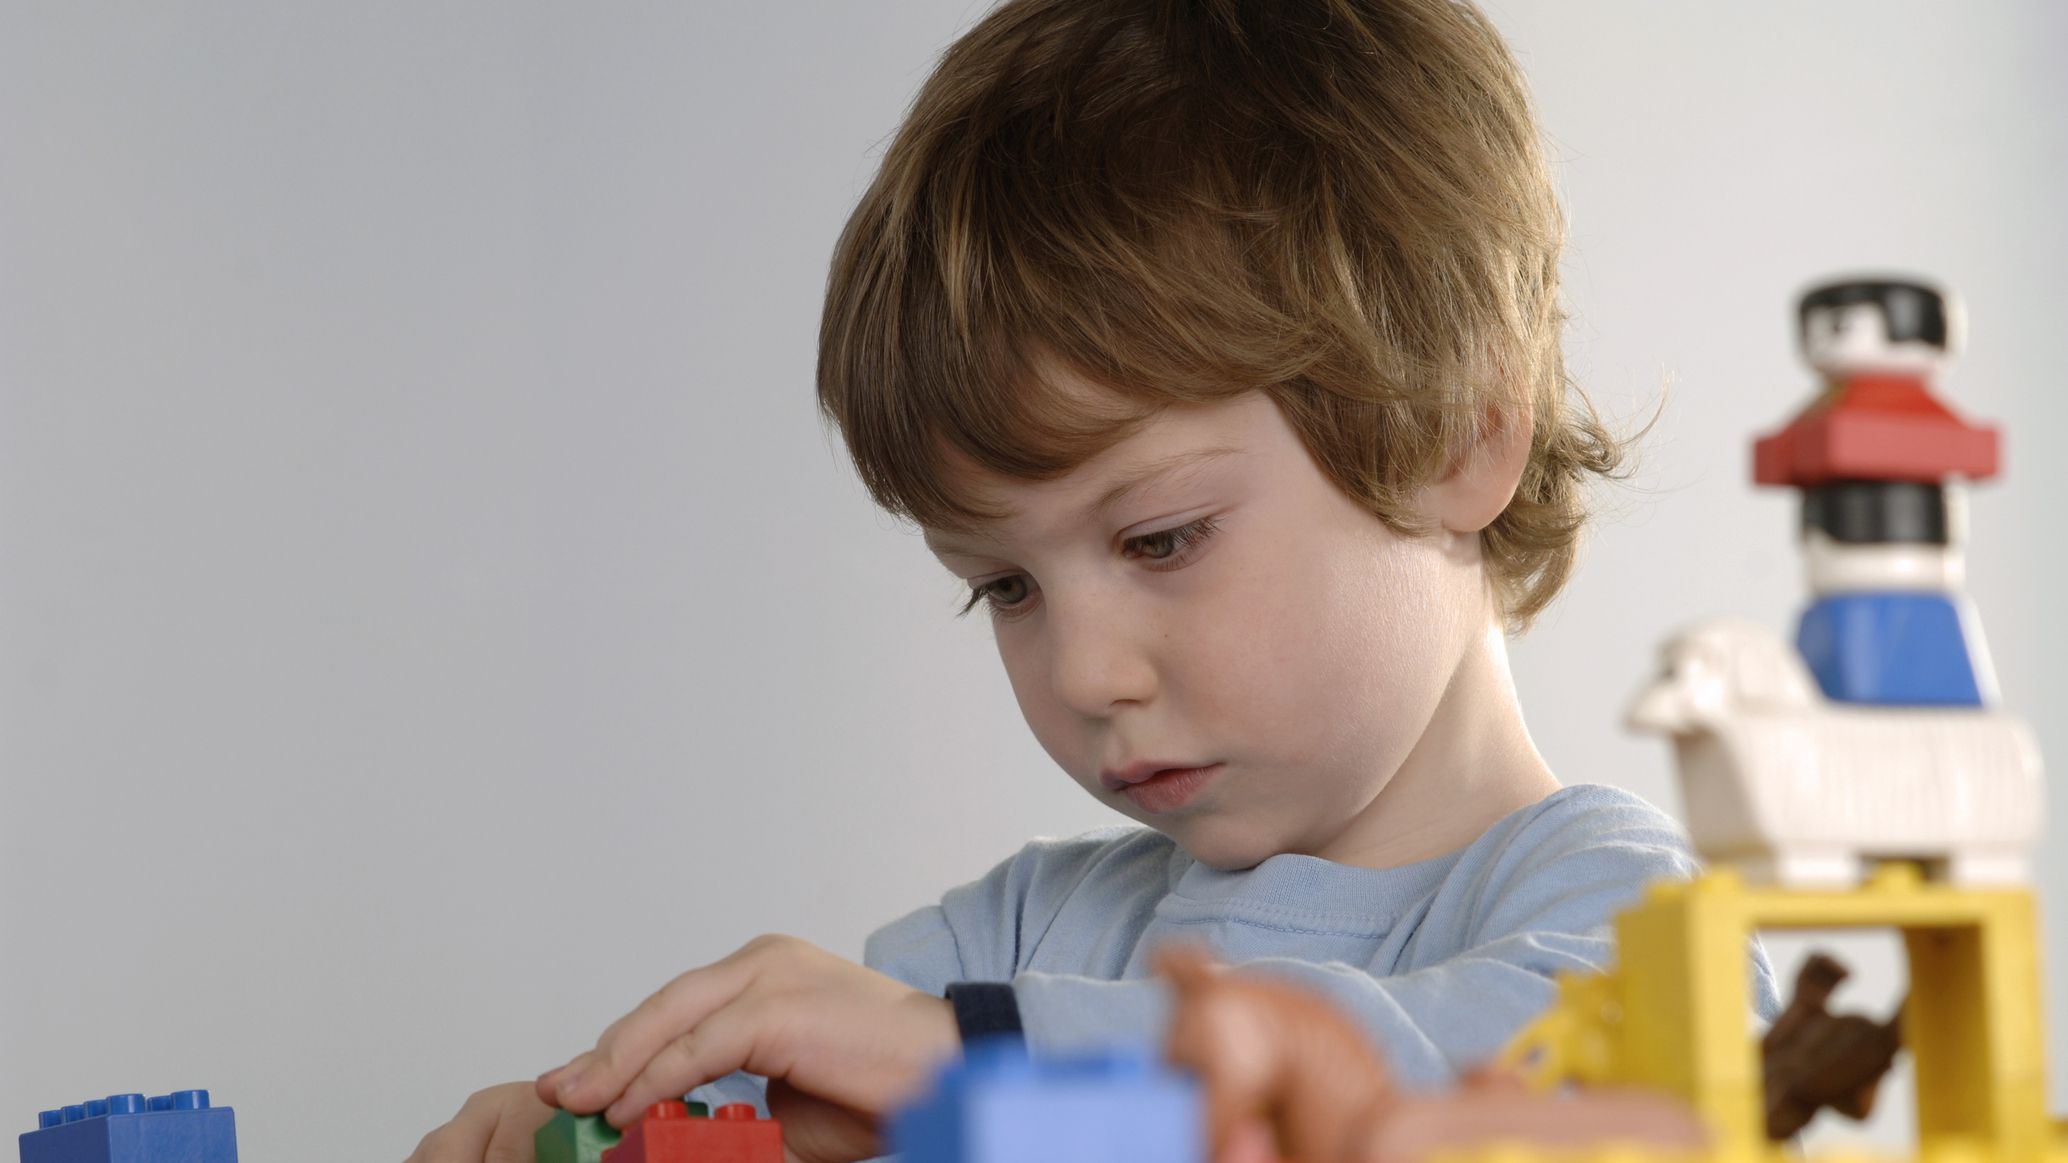 The 23 Best Toys For 7 Year Old Boys Of 2021